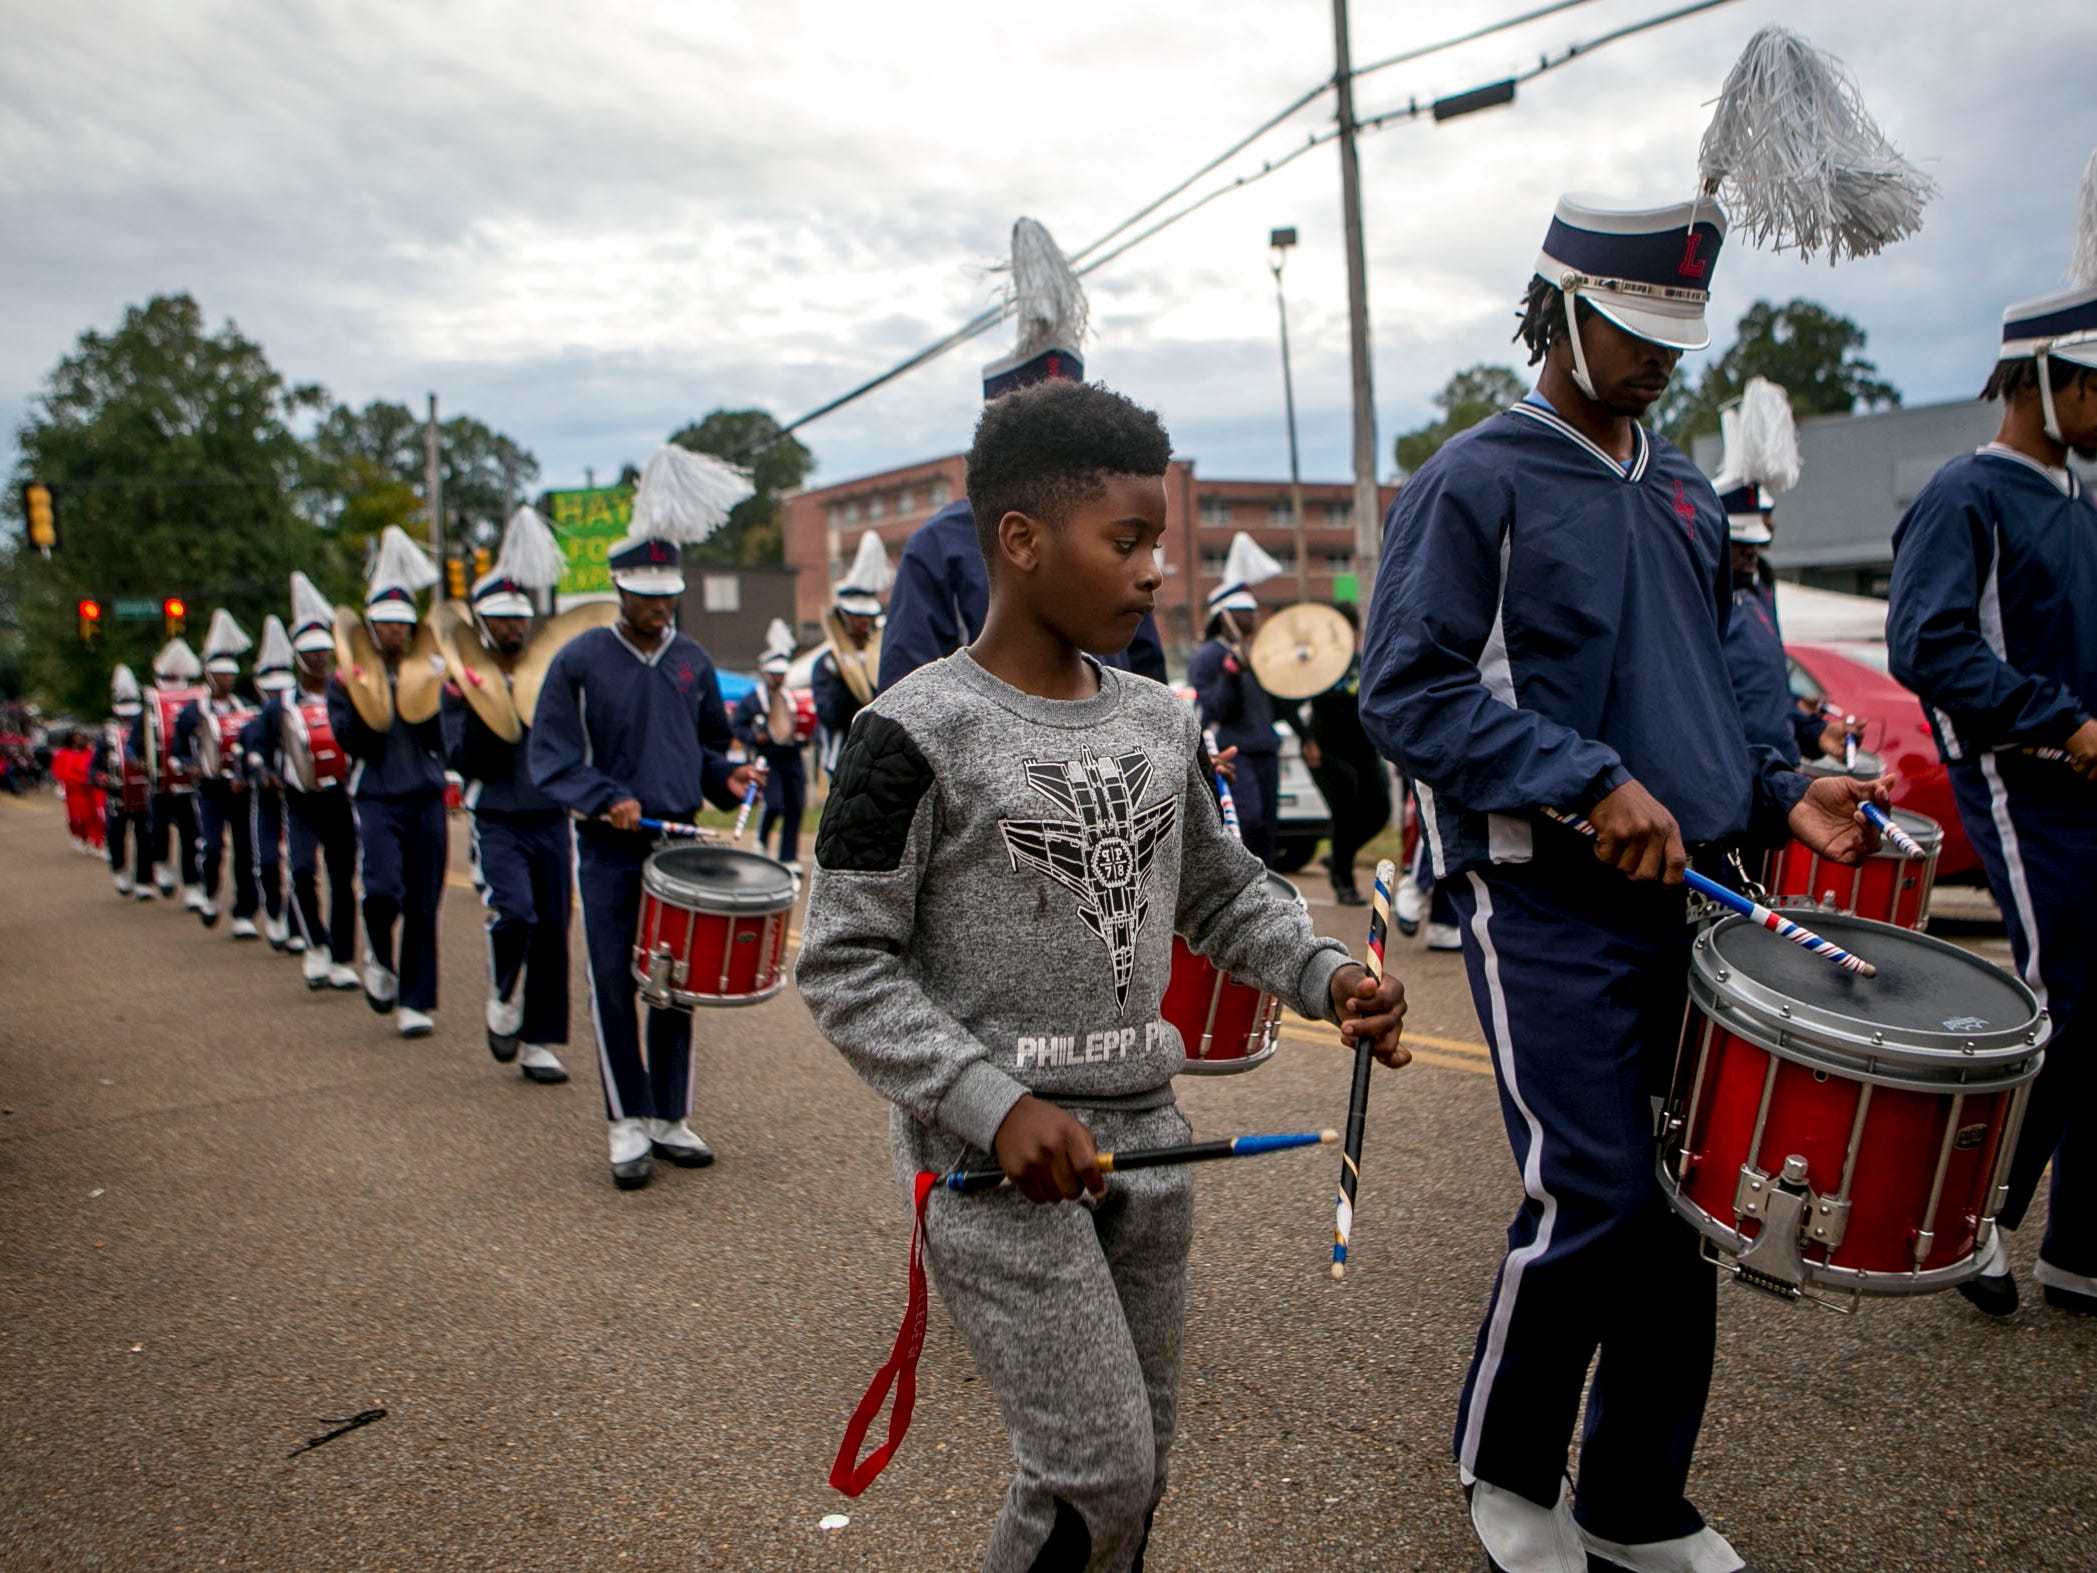 Jaylin Agnew, center, mimics his brother Brandon Agnew's high stepping and snare playing while the Lane College marching band moves back to Lane College at T.R. White Sportsplex in Jackson, Tenn., on Saturday, Oct. 13, 2018.